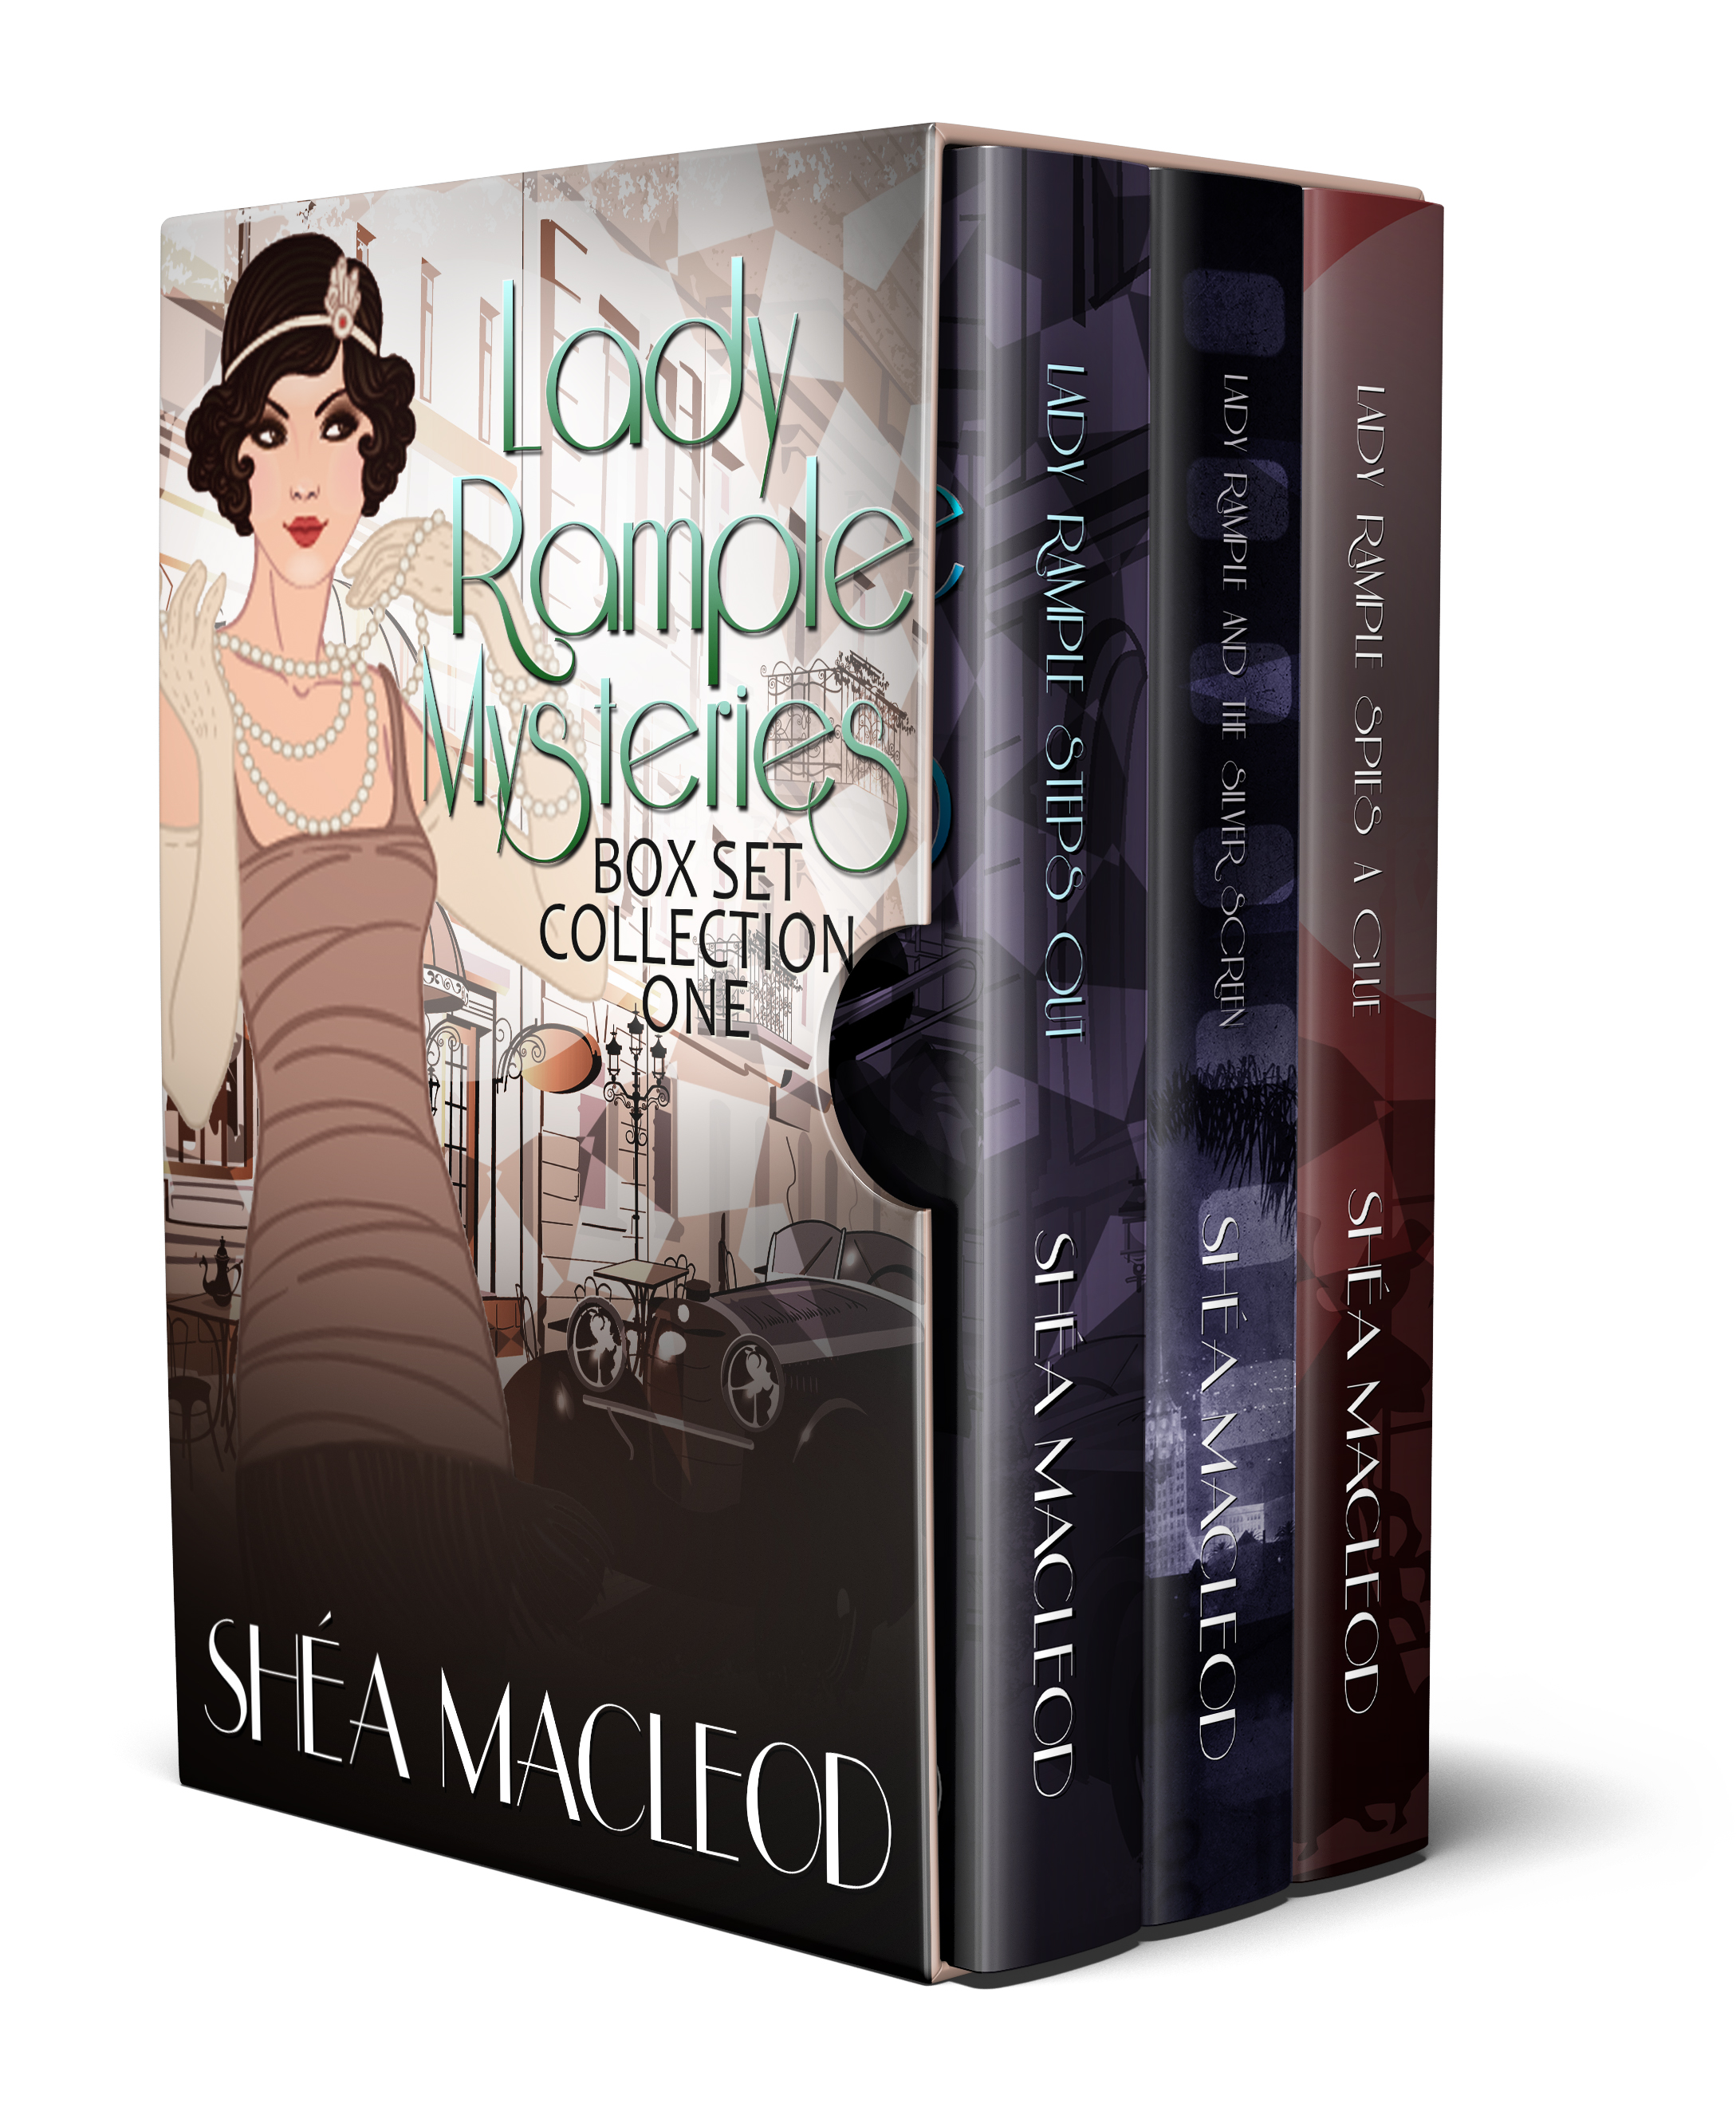 Lady Rample Box Set Collection One: Books 1-3